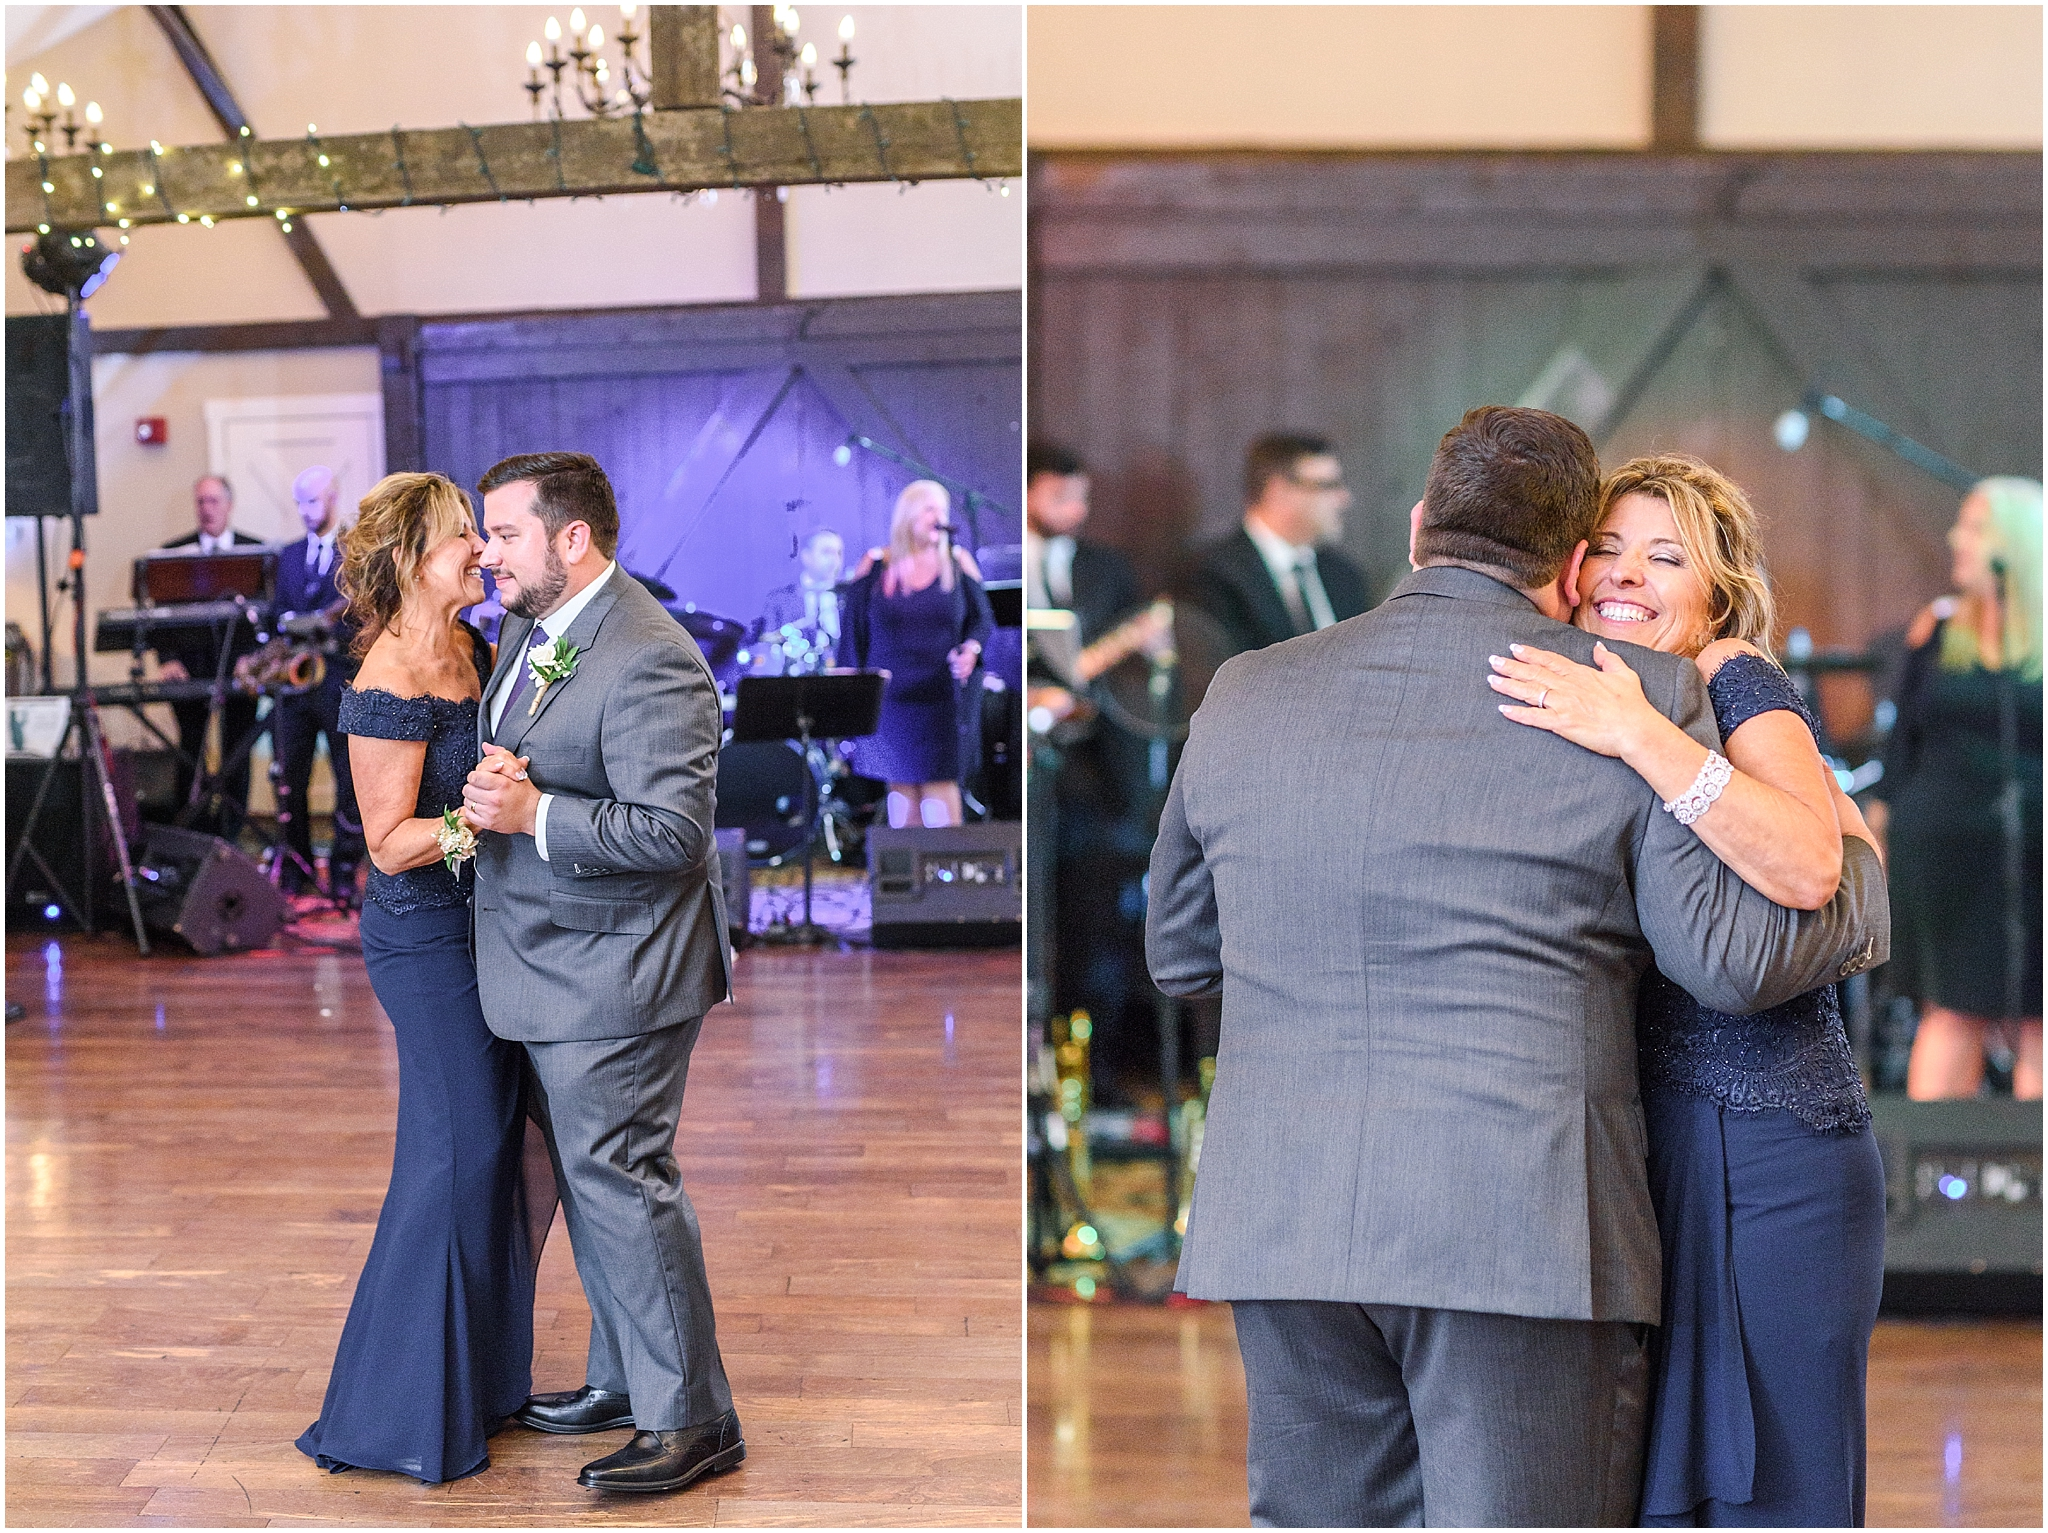 Philadelphia Wedding Photography at Normandy Farm Wedding by Olivia Rae Photography